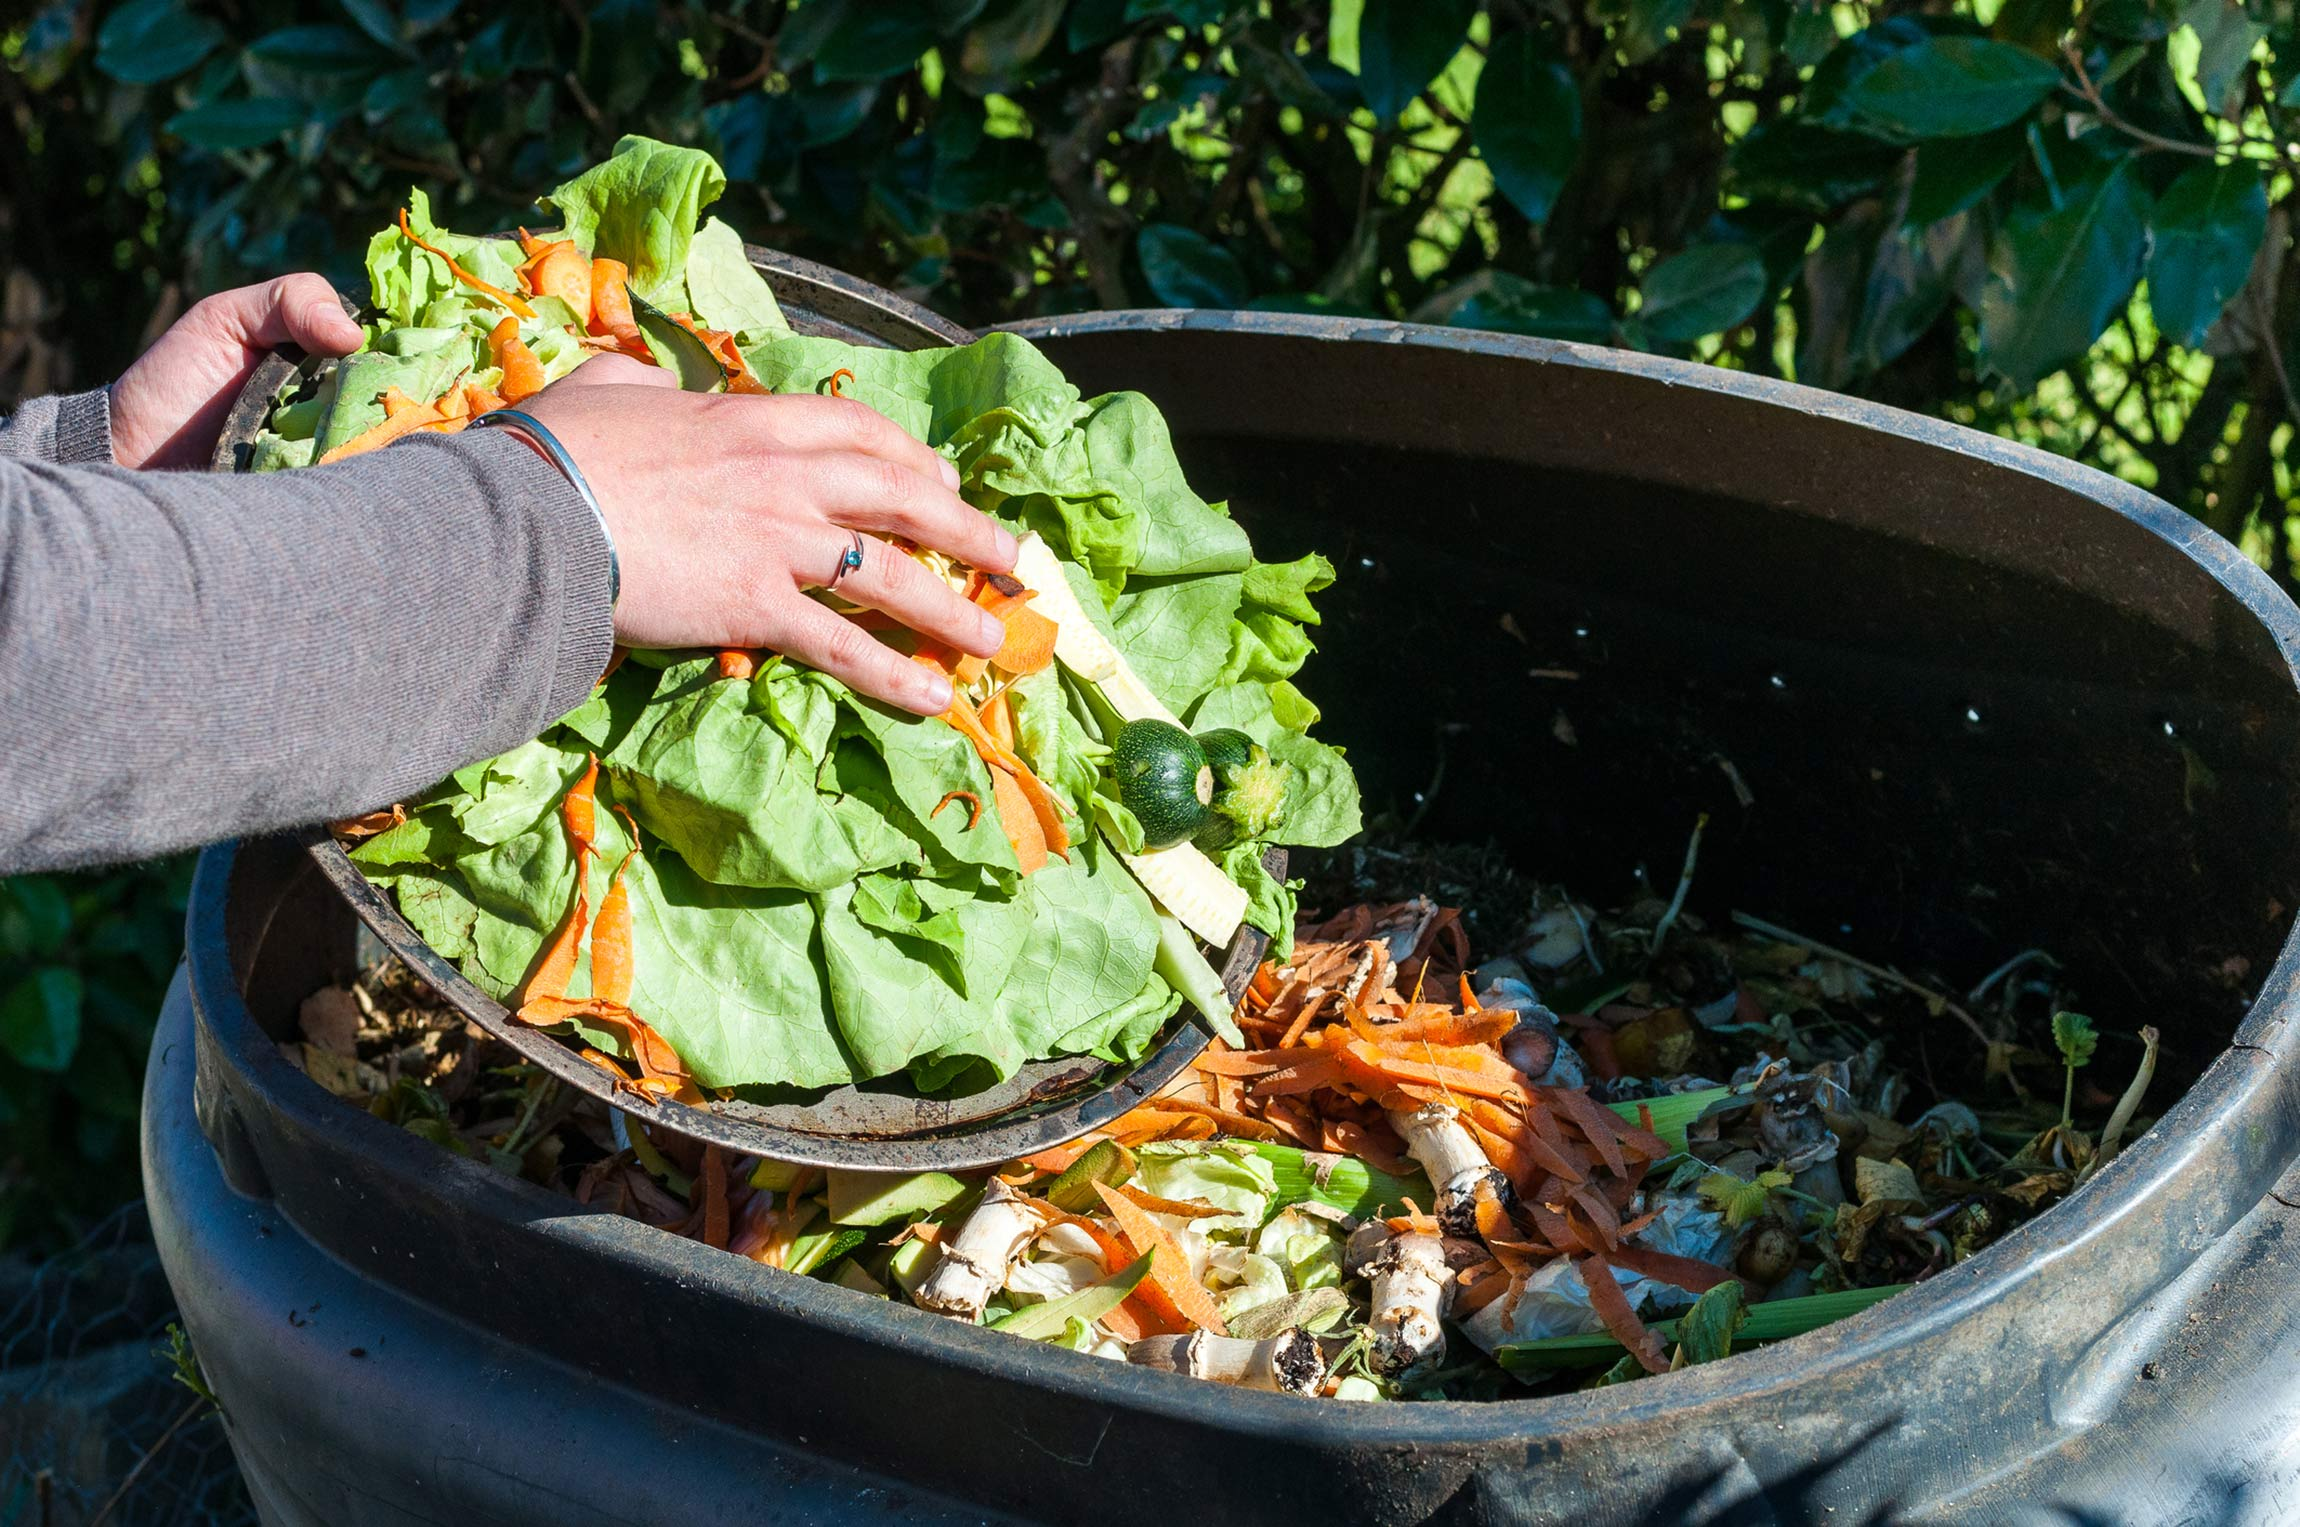 organic food scraps for composting